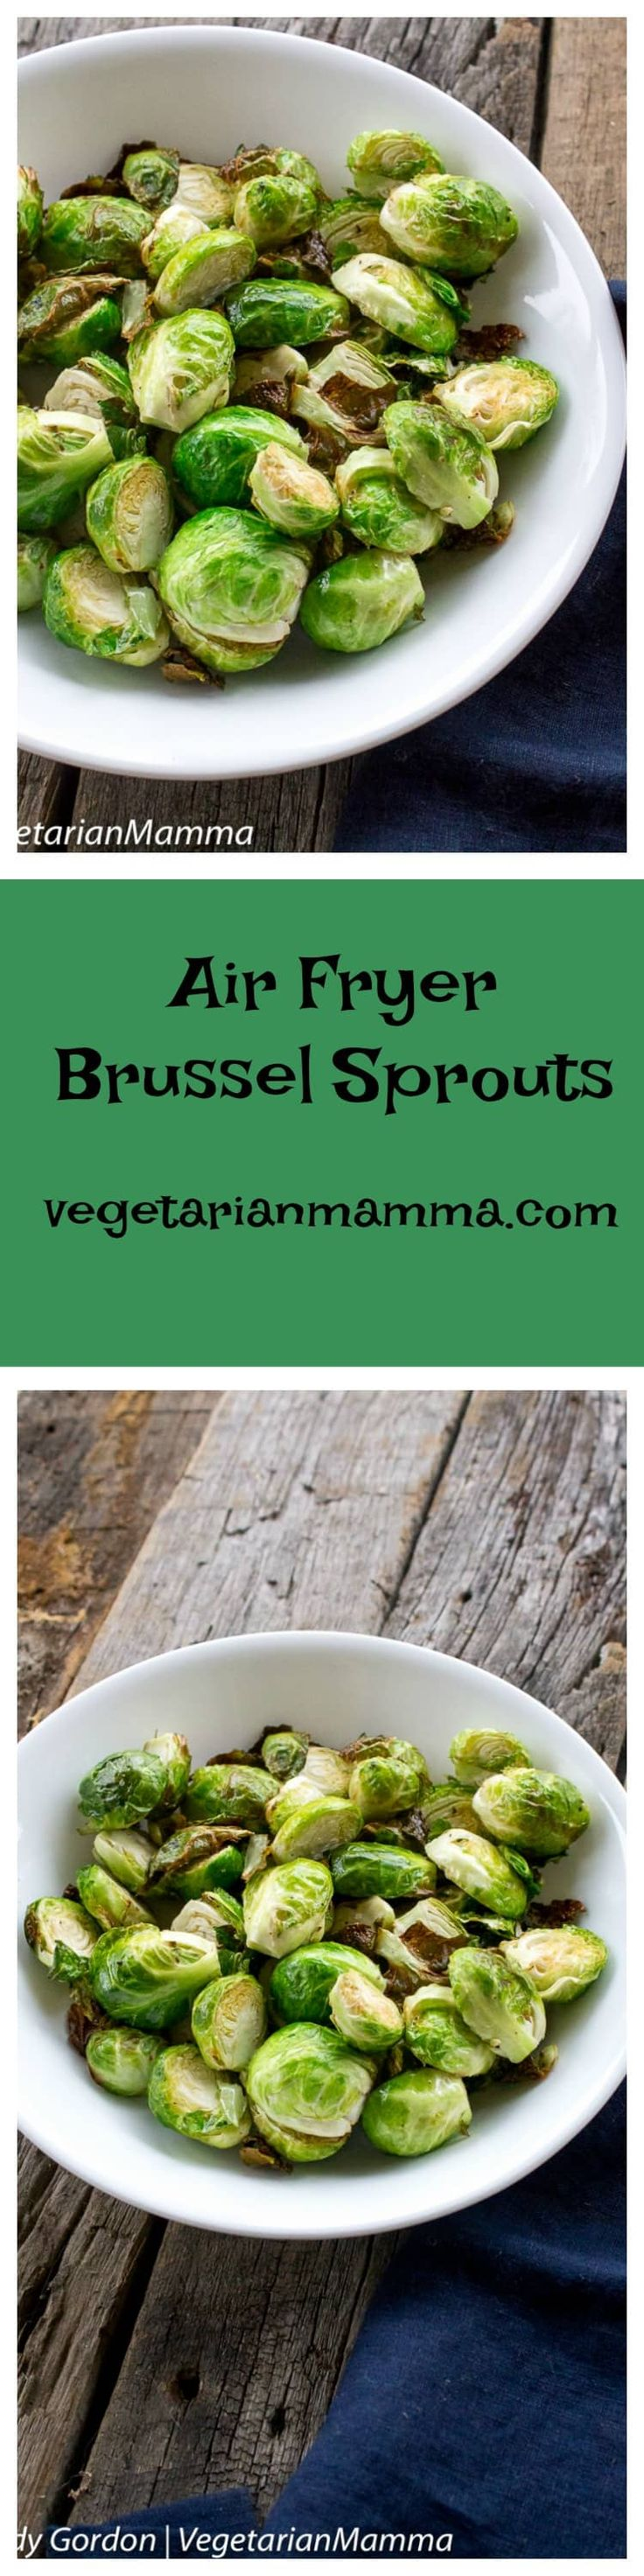 Air Fryer Brussel Sprouts is a simple and easy to make side dish. Making and eating your brussels has never been easier! Eat those veggies!